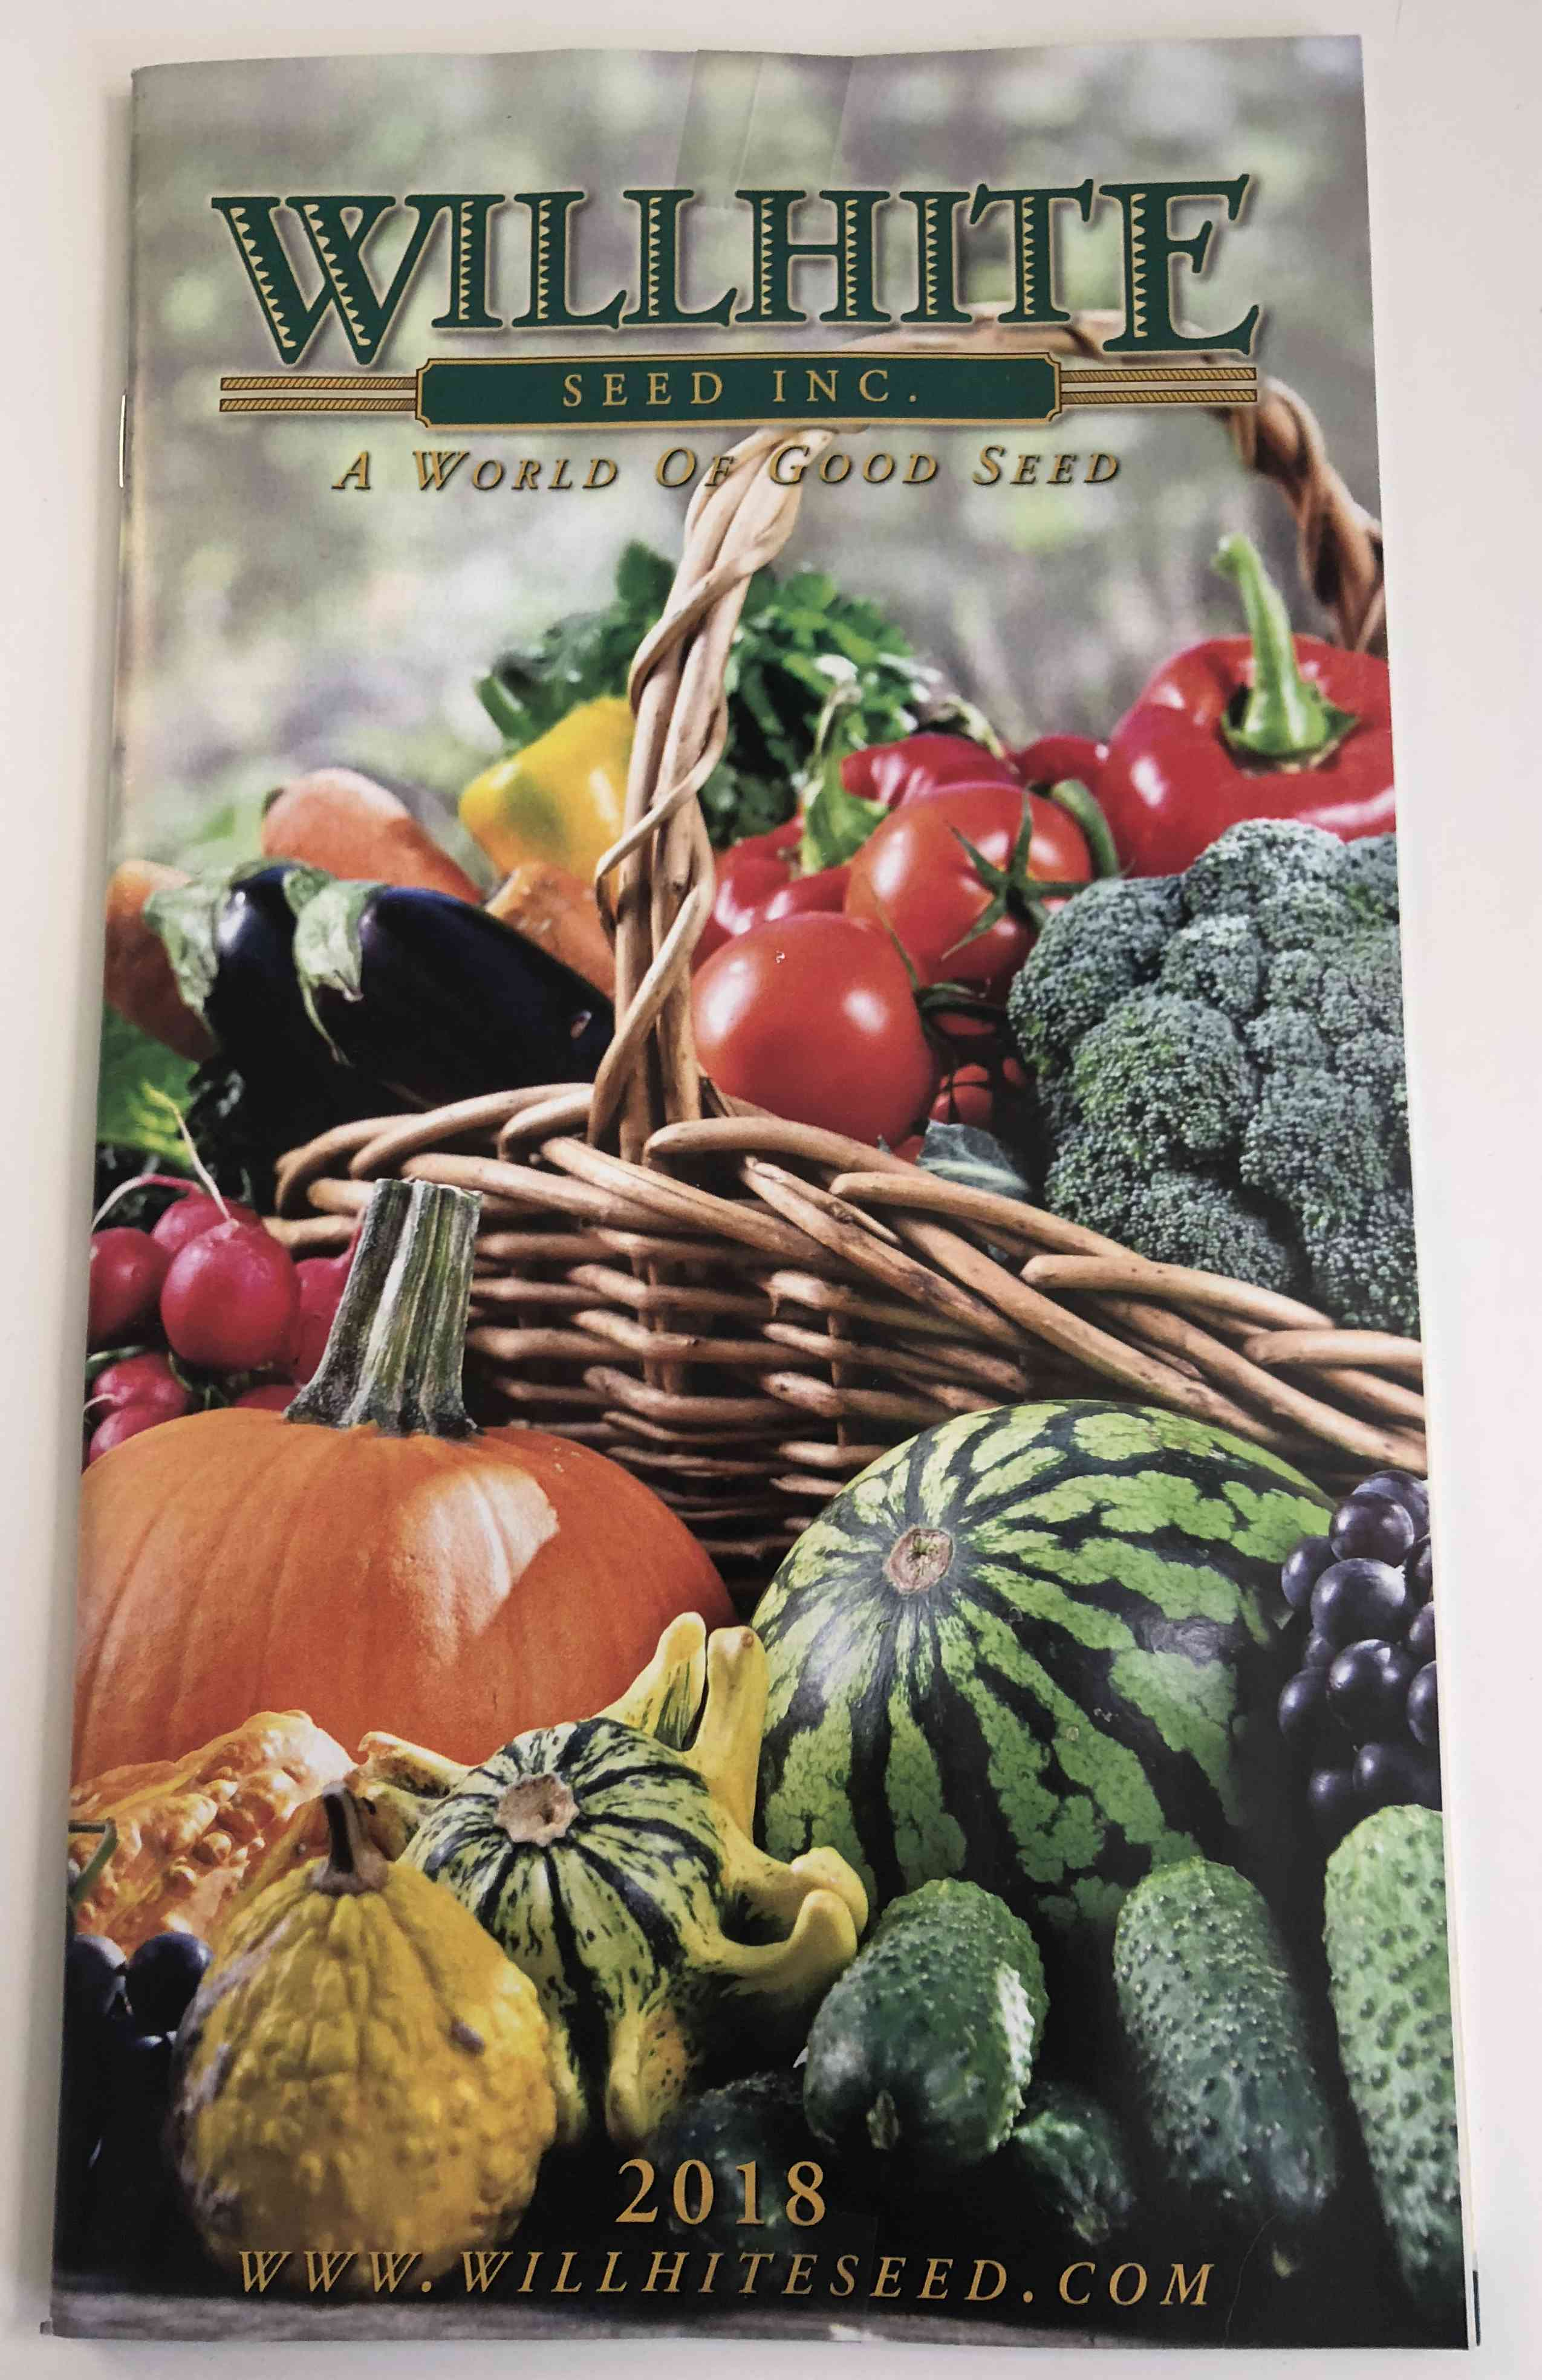 The 2018 Willhite Seed Inc. catalog